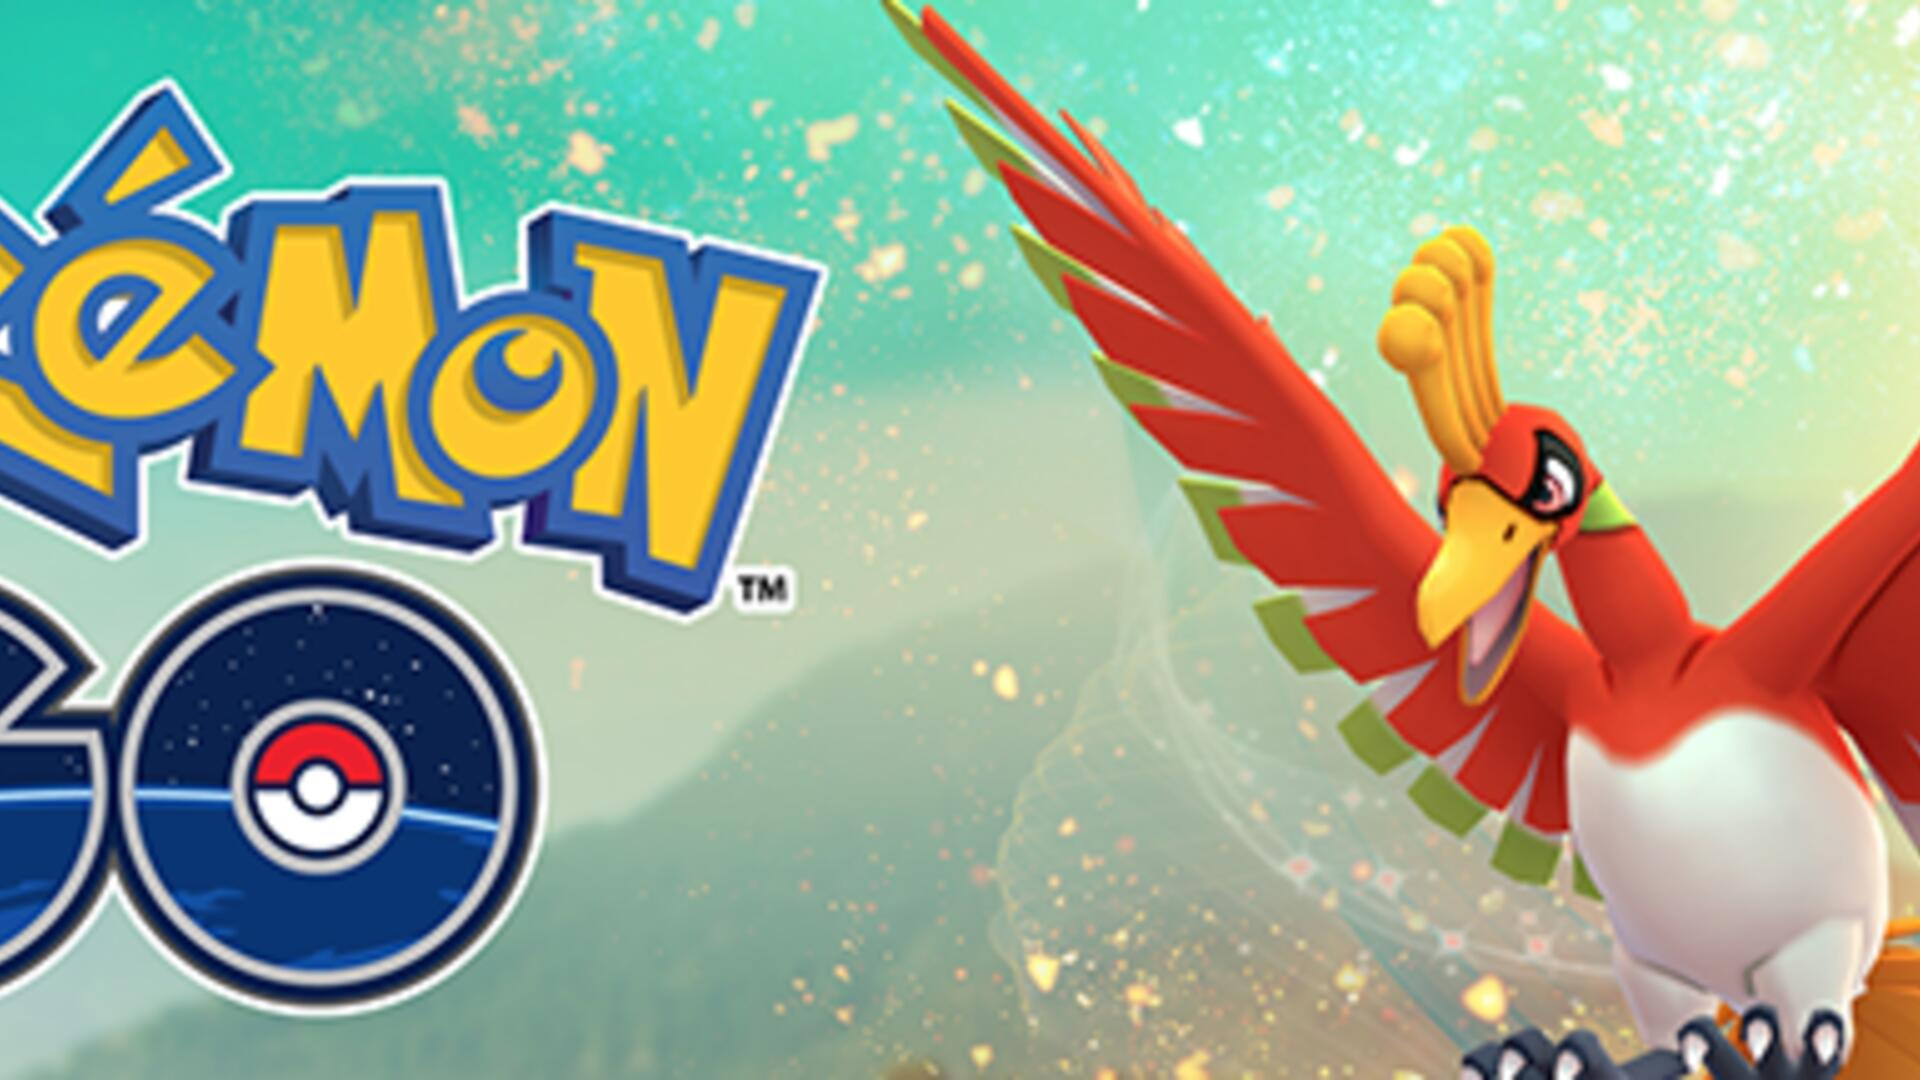 Catch Ho-Oh in Pokemon GO for a Limited Time